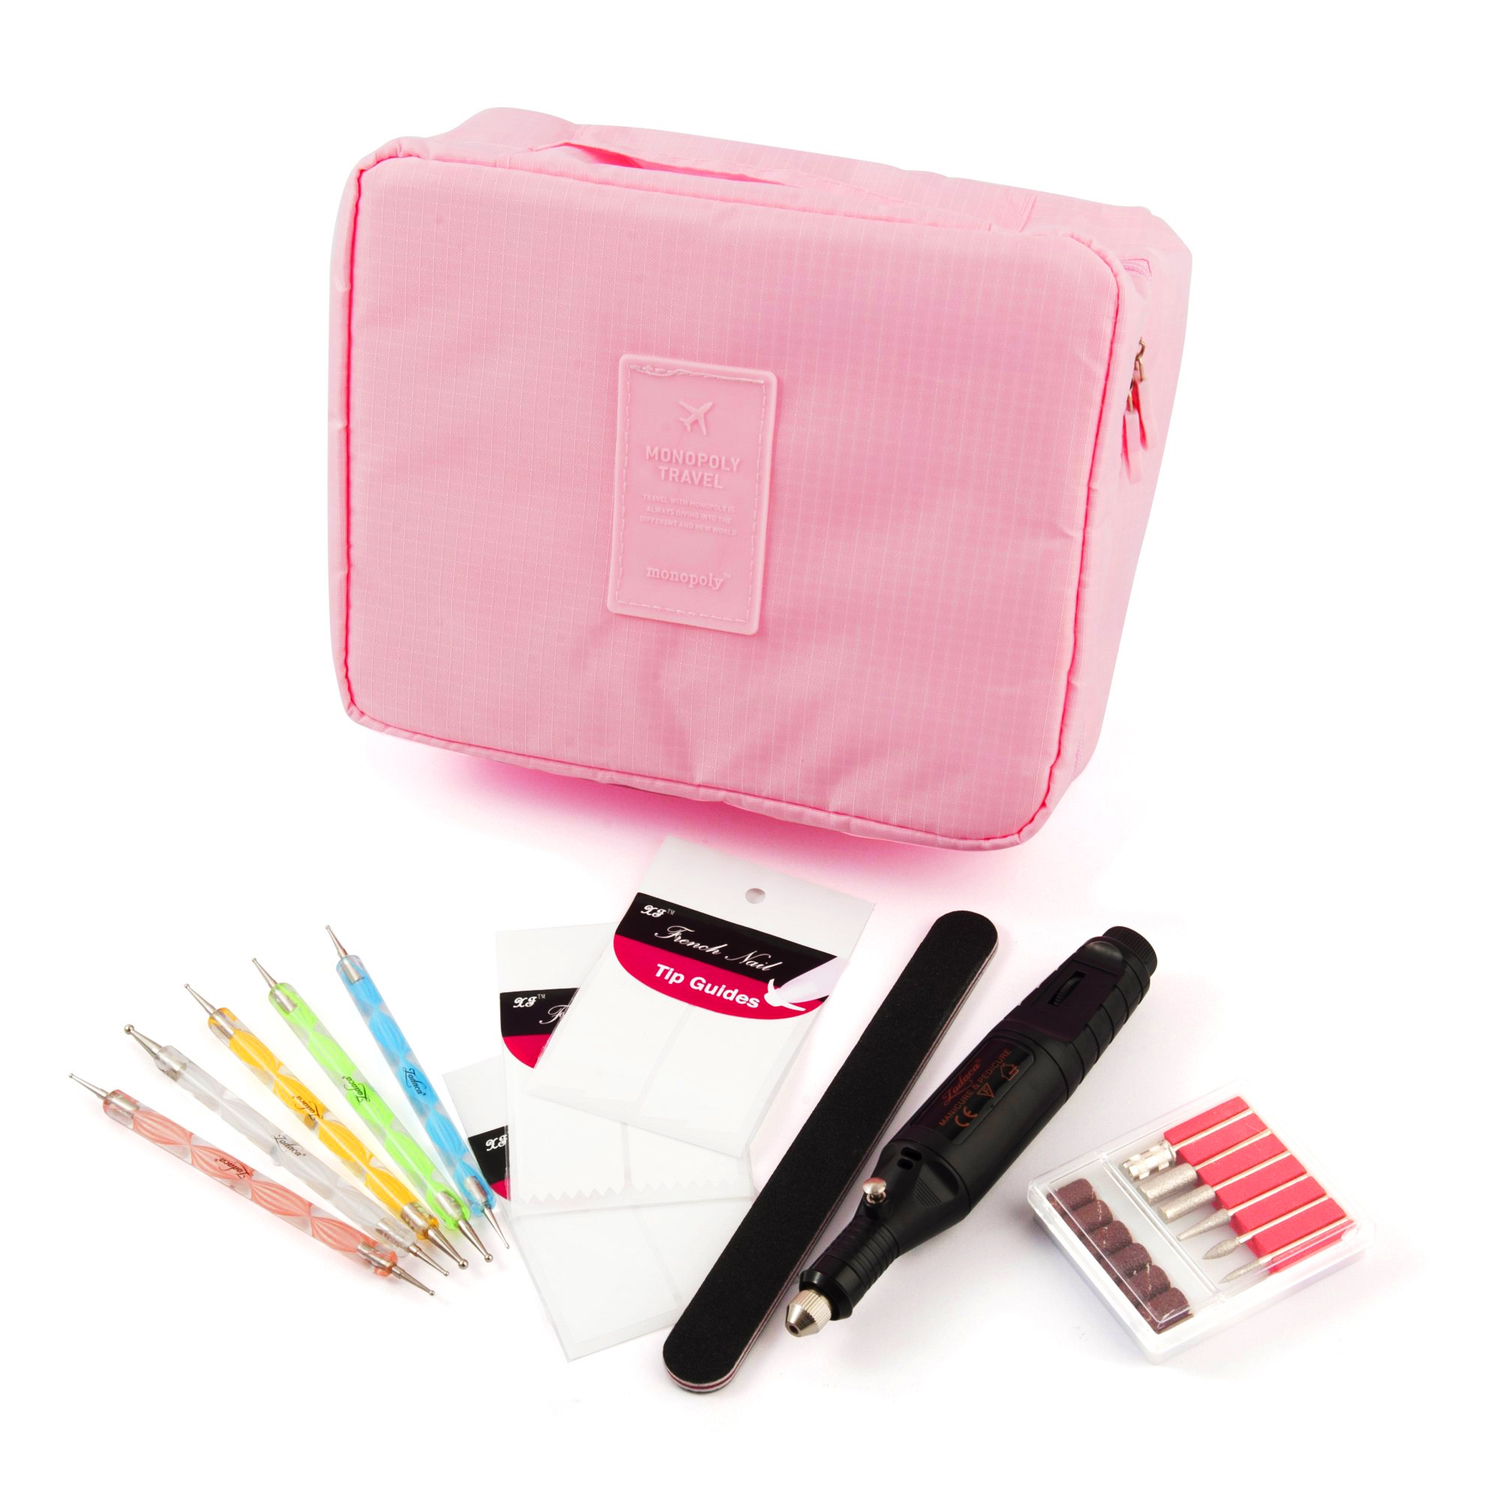 Zodaca 7-piece Nail Art Luxury Gift Set of Electric Manicure Pedicure Tool, File, Stickers, Pens & Travel Cosmetic Bag